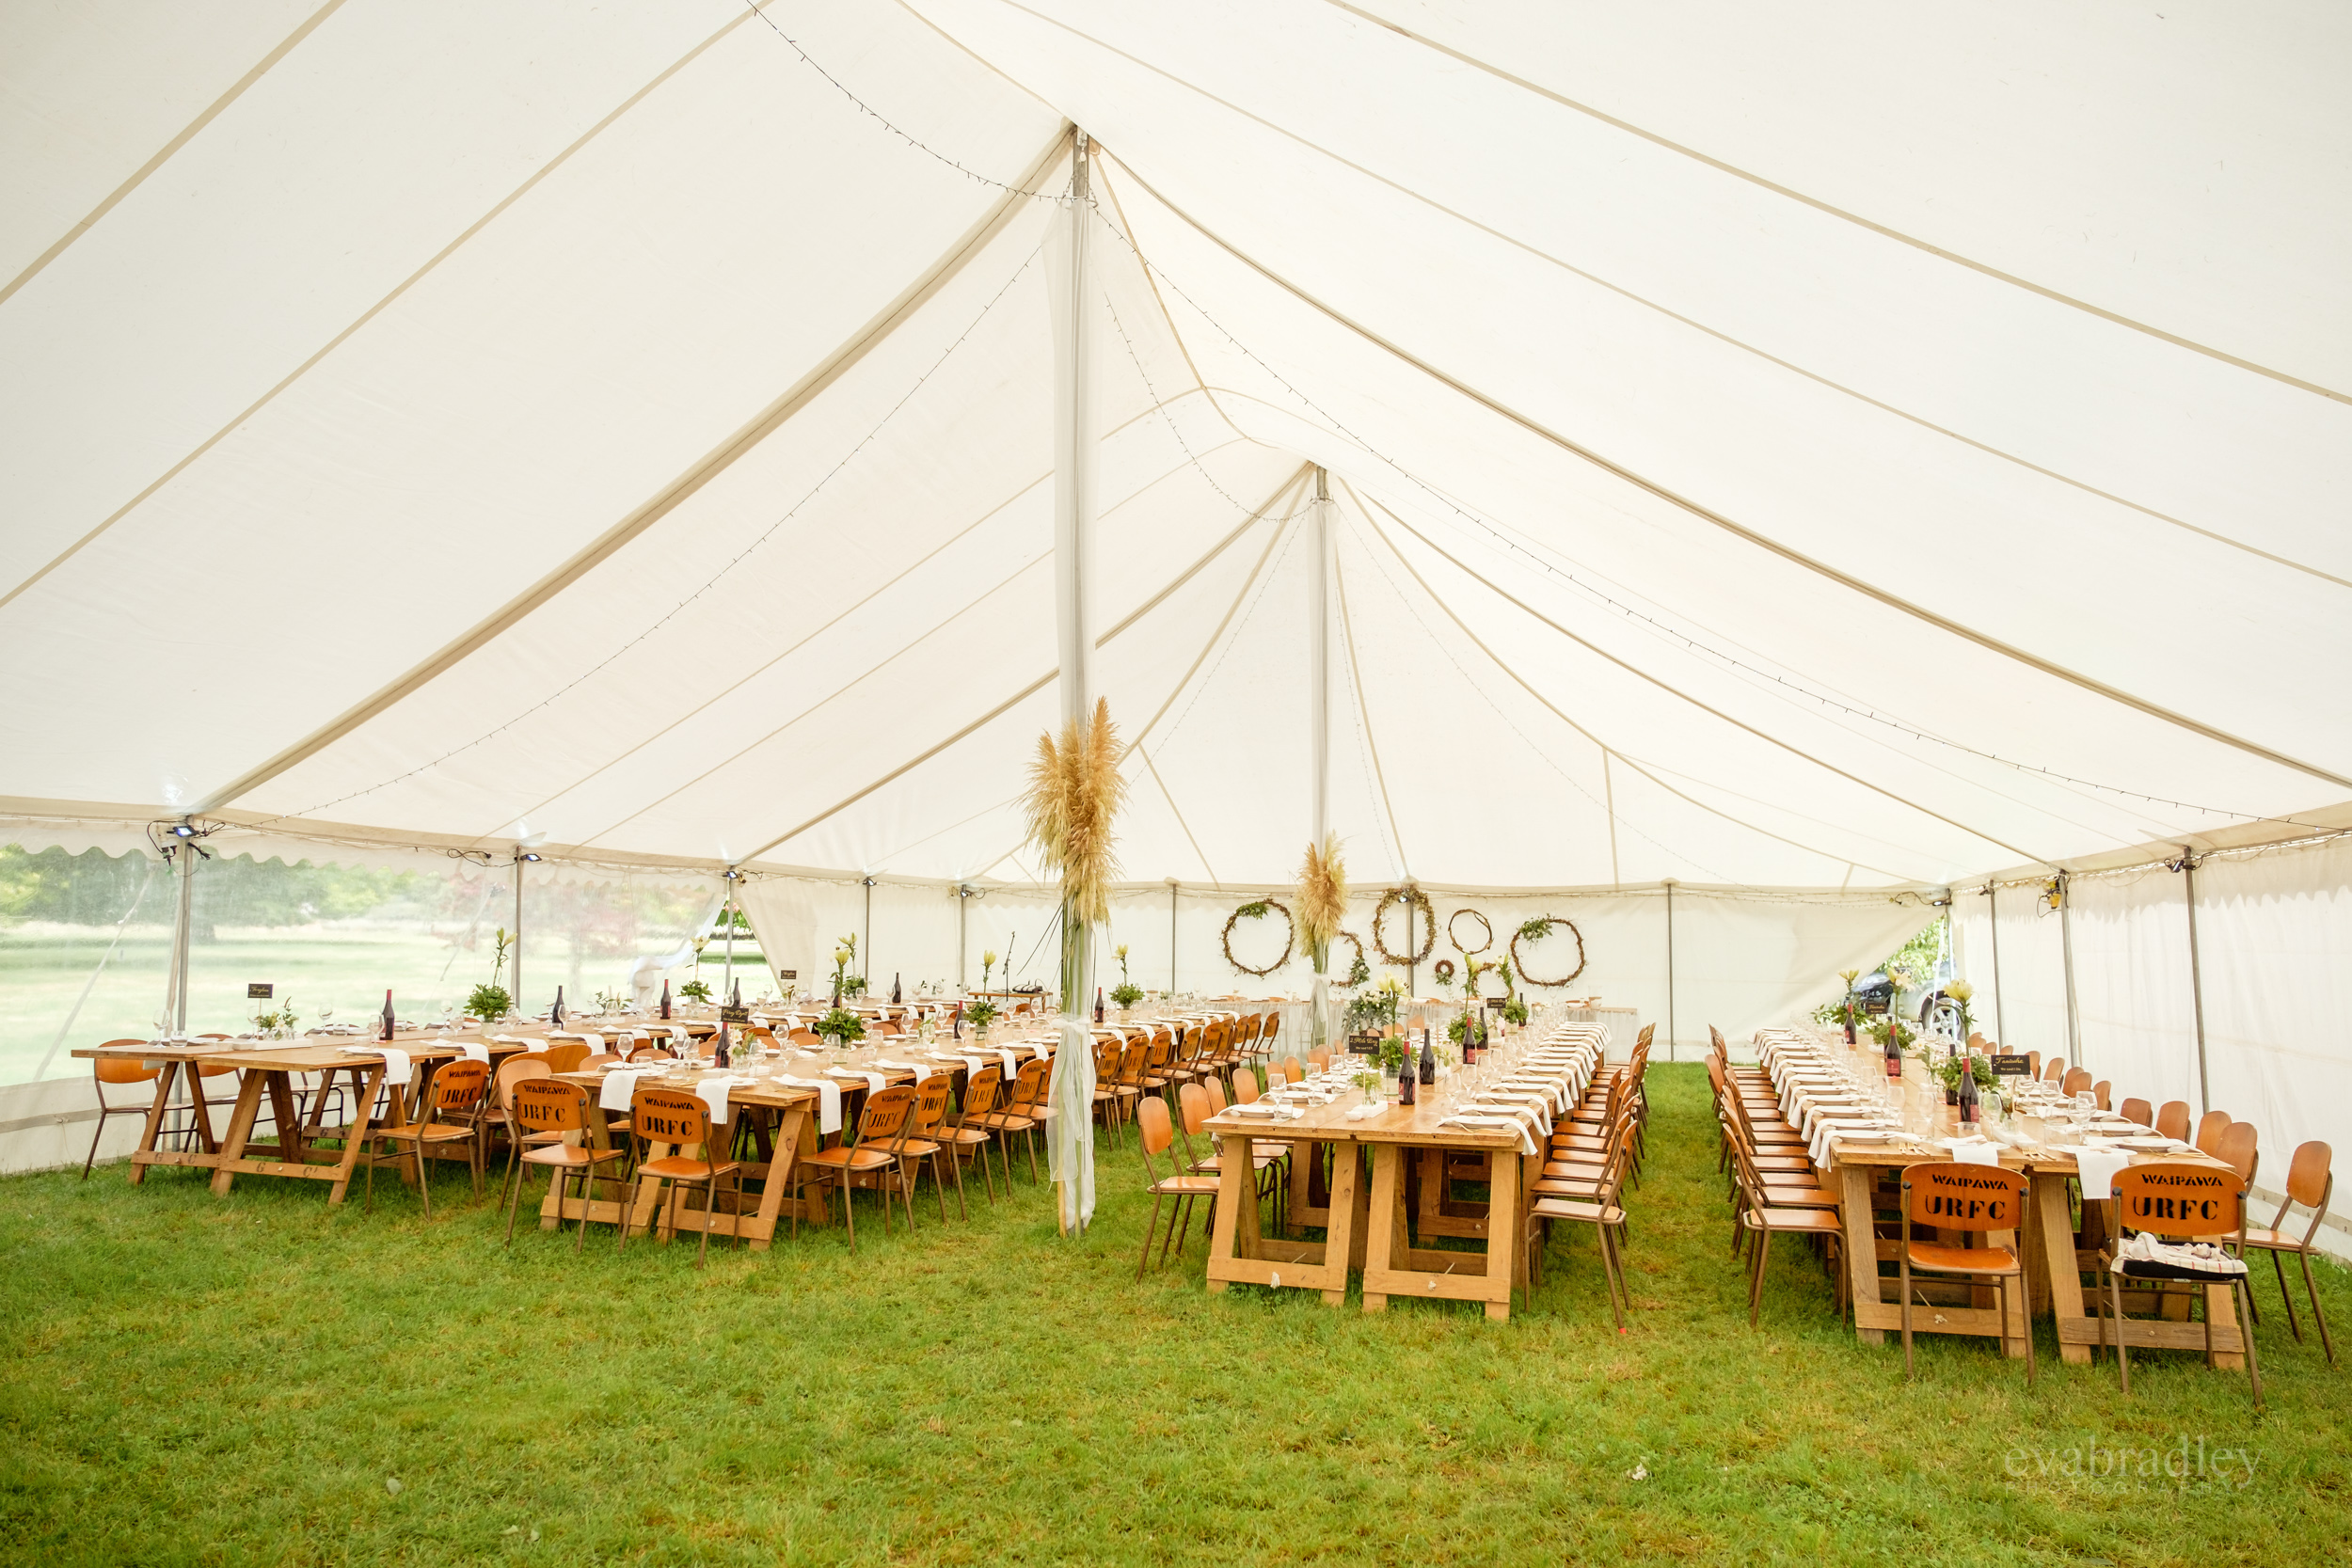 Authentic rustic DIY country wedding - Char & Russ at Taniwha